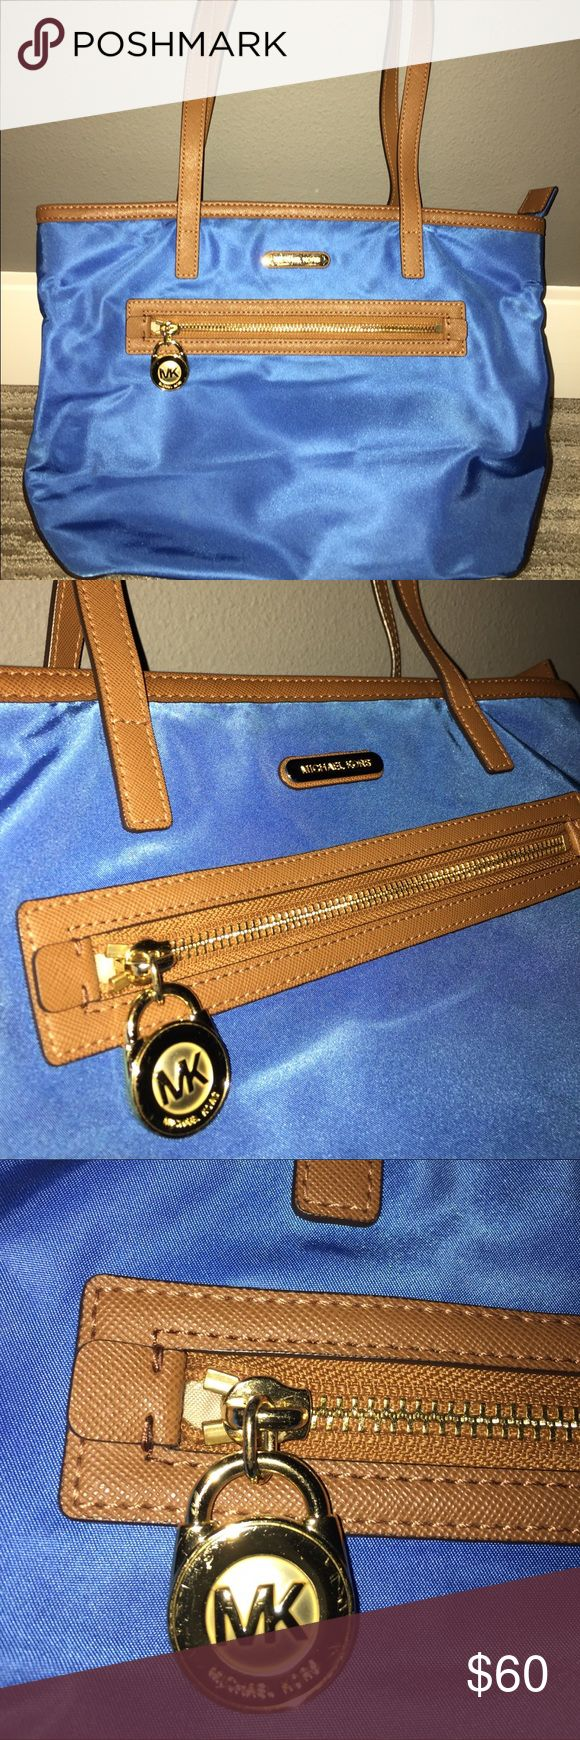 NWOT Michael Kors Blue Nylon Tote Bag Med NWOT Michael Kors Nylon Tote Bag in Blue with Brown Straps, Decorative details and bottom leather covering.  As indicated in the photos, this Tote is perfect condition.  Purchased from Nordstrom for $120.  Smoke and Pet free home. Michael Kors Bags Totes